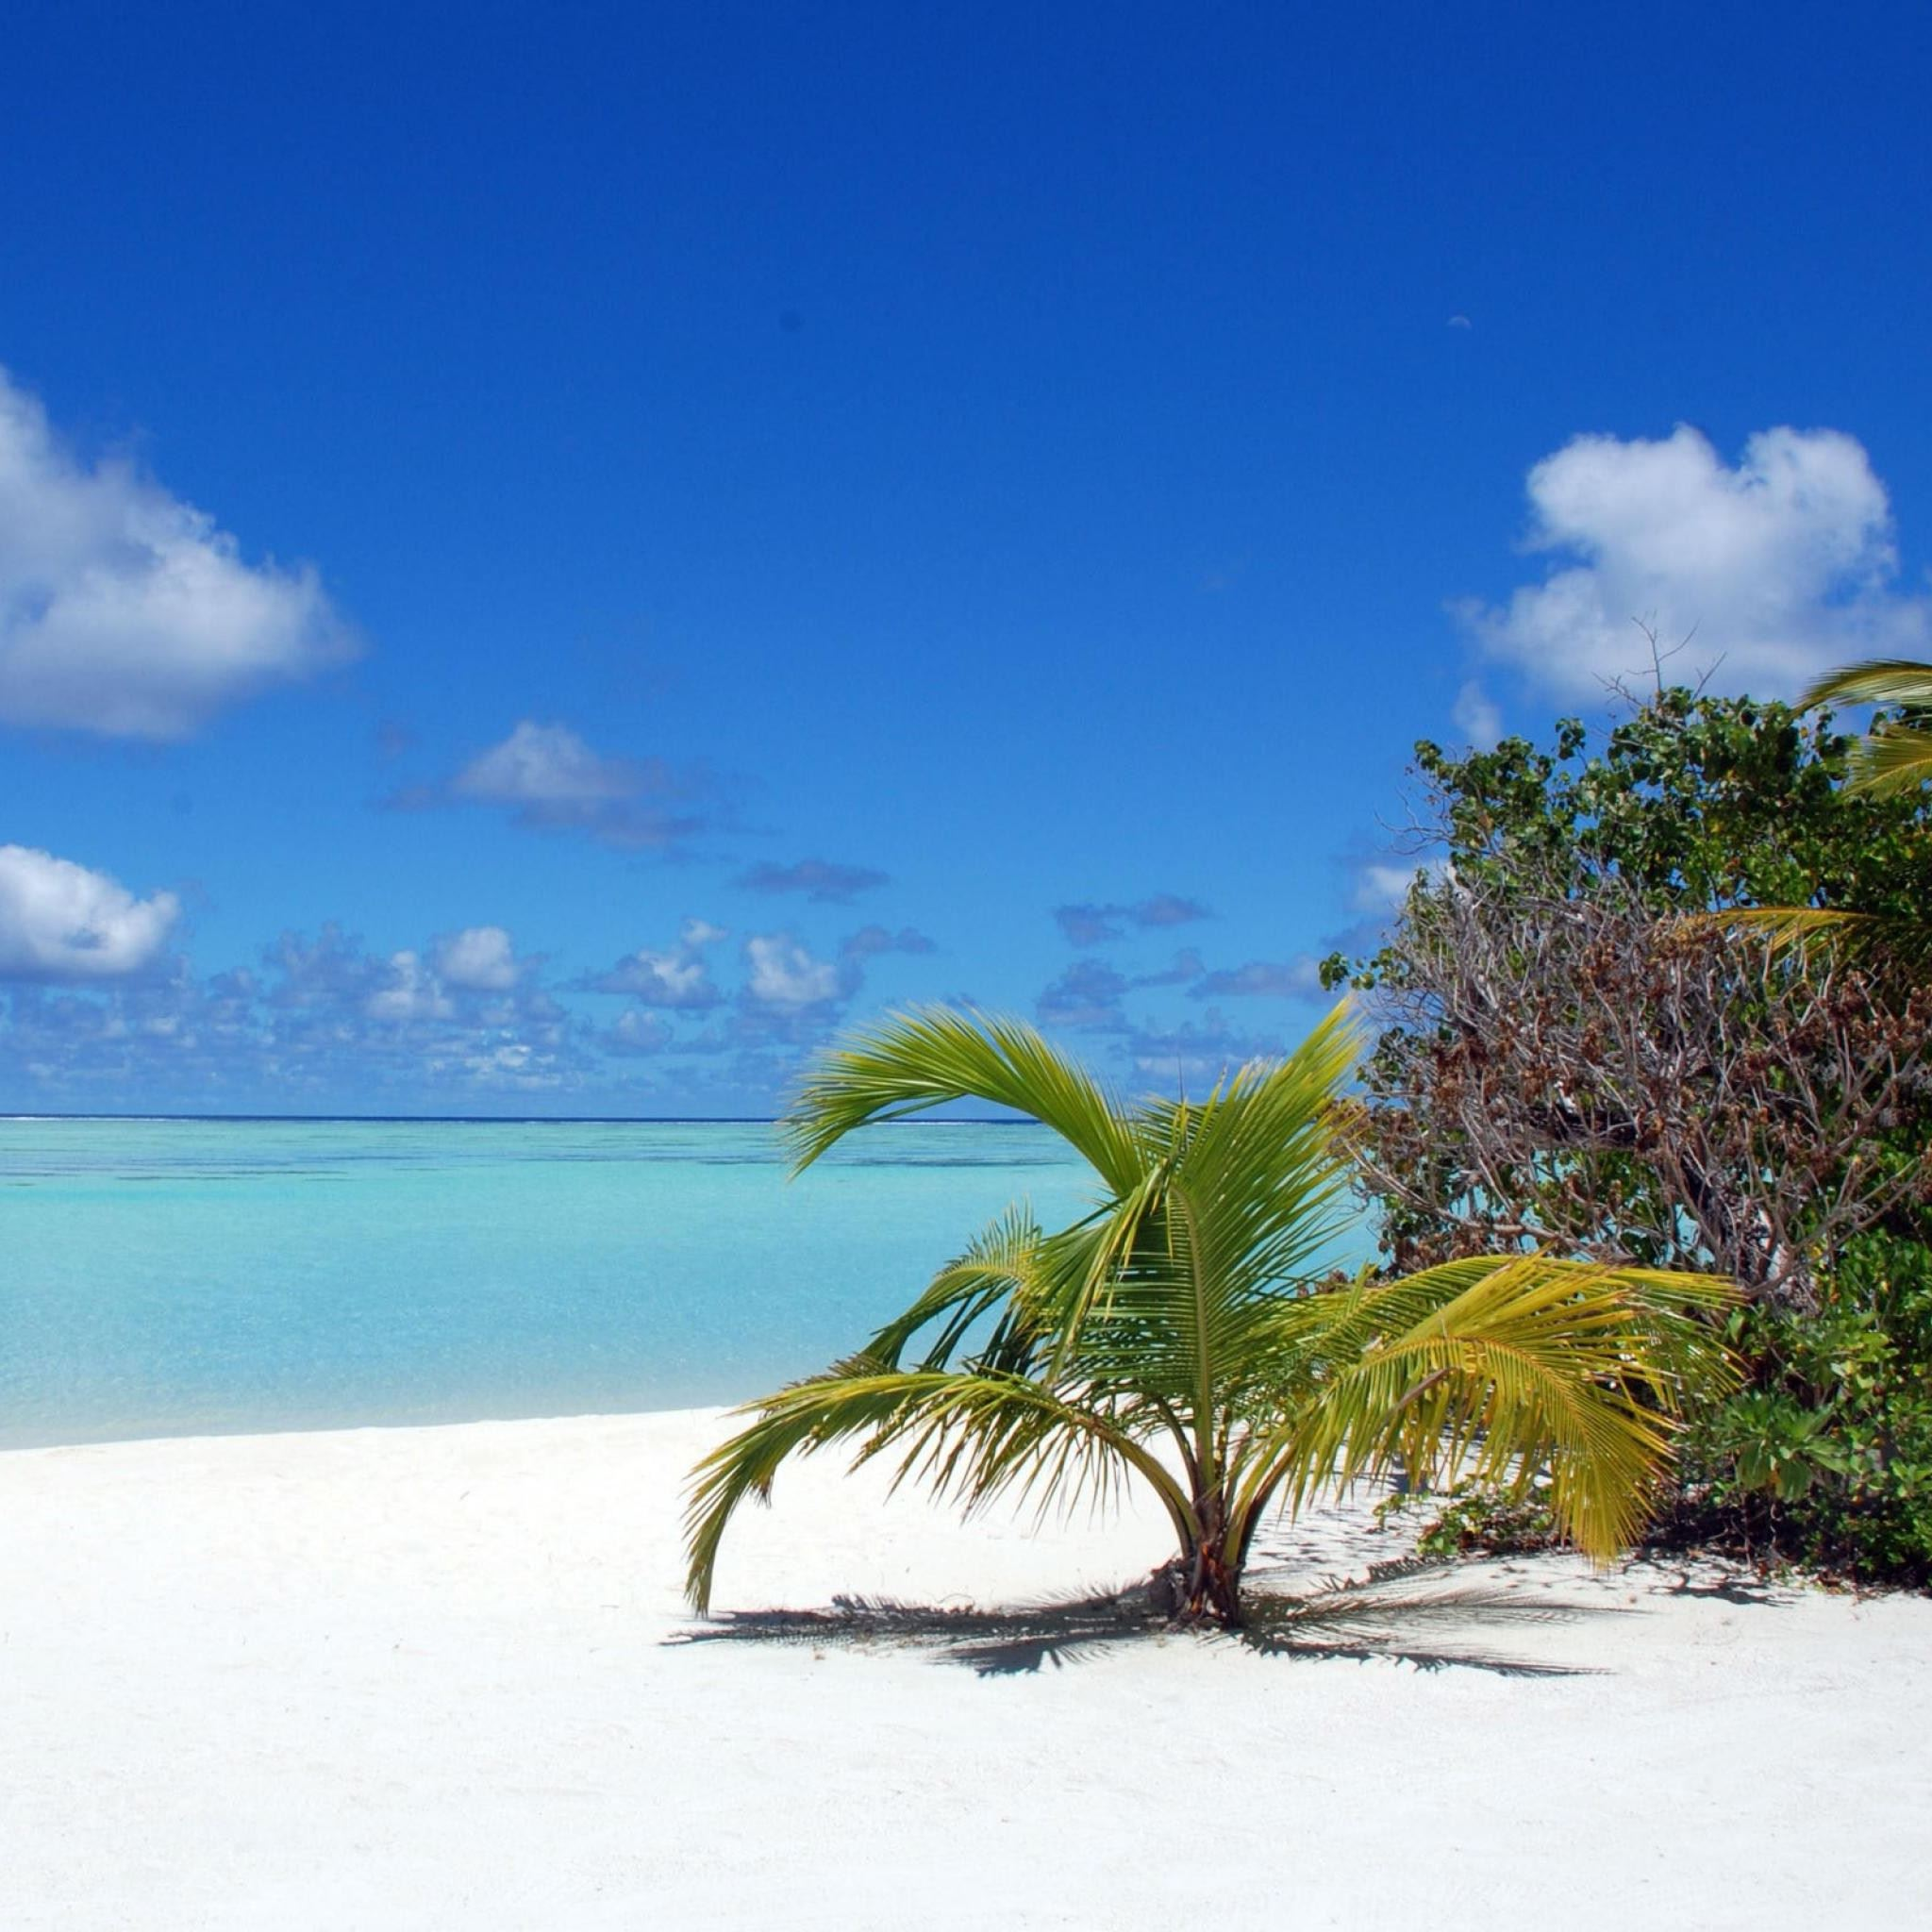 Maldives Beaches Palm Trees Ipad Air Wallpapers Free Download